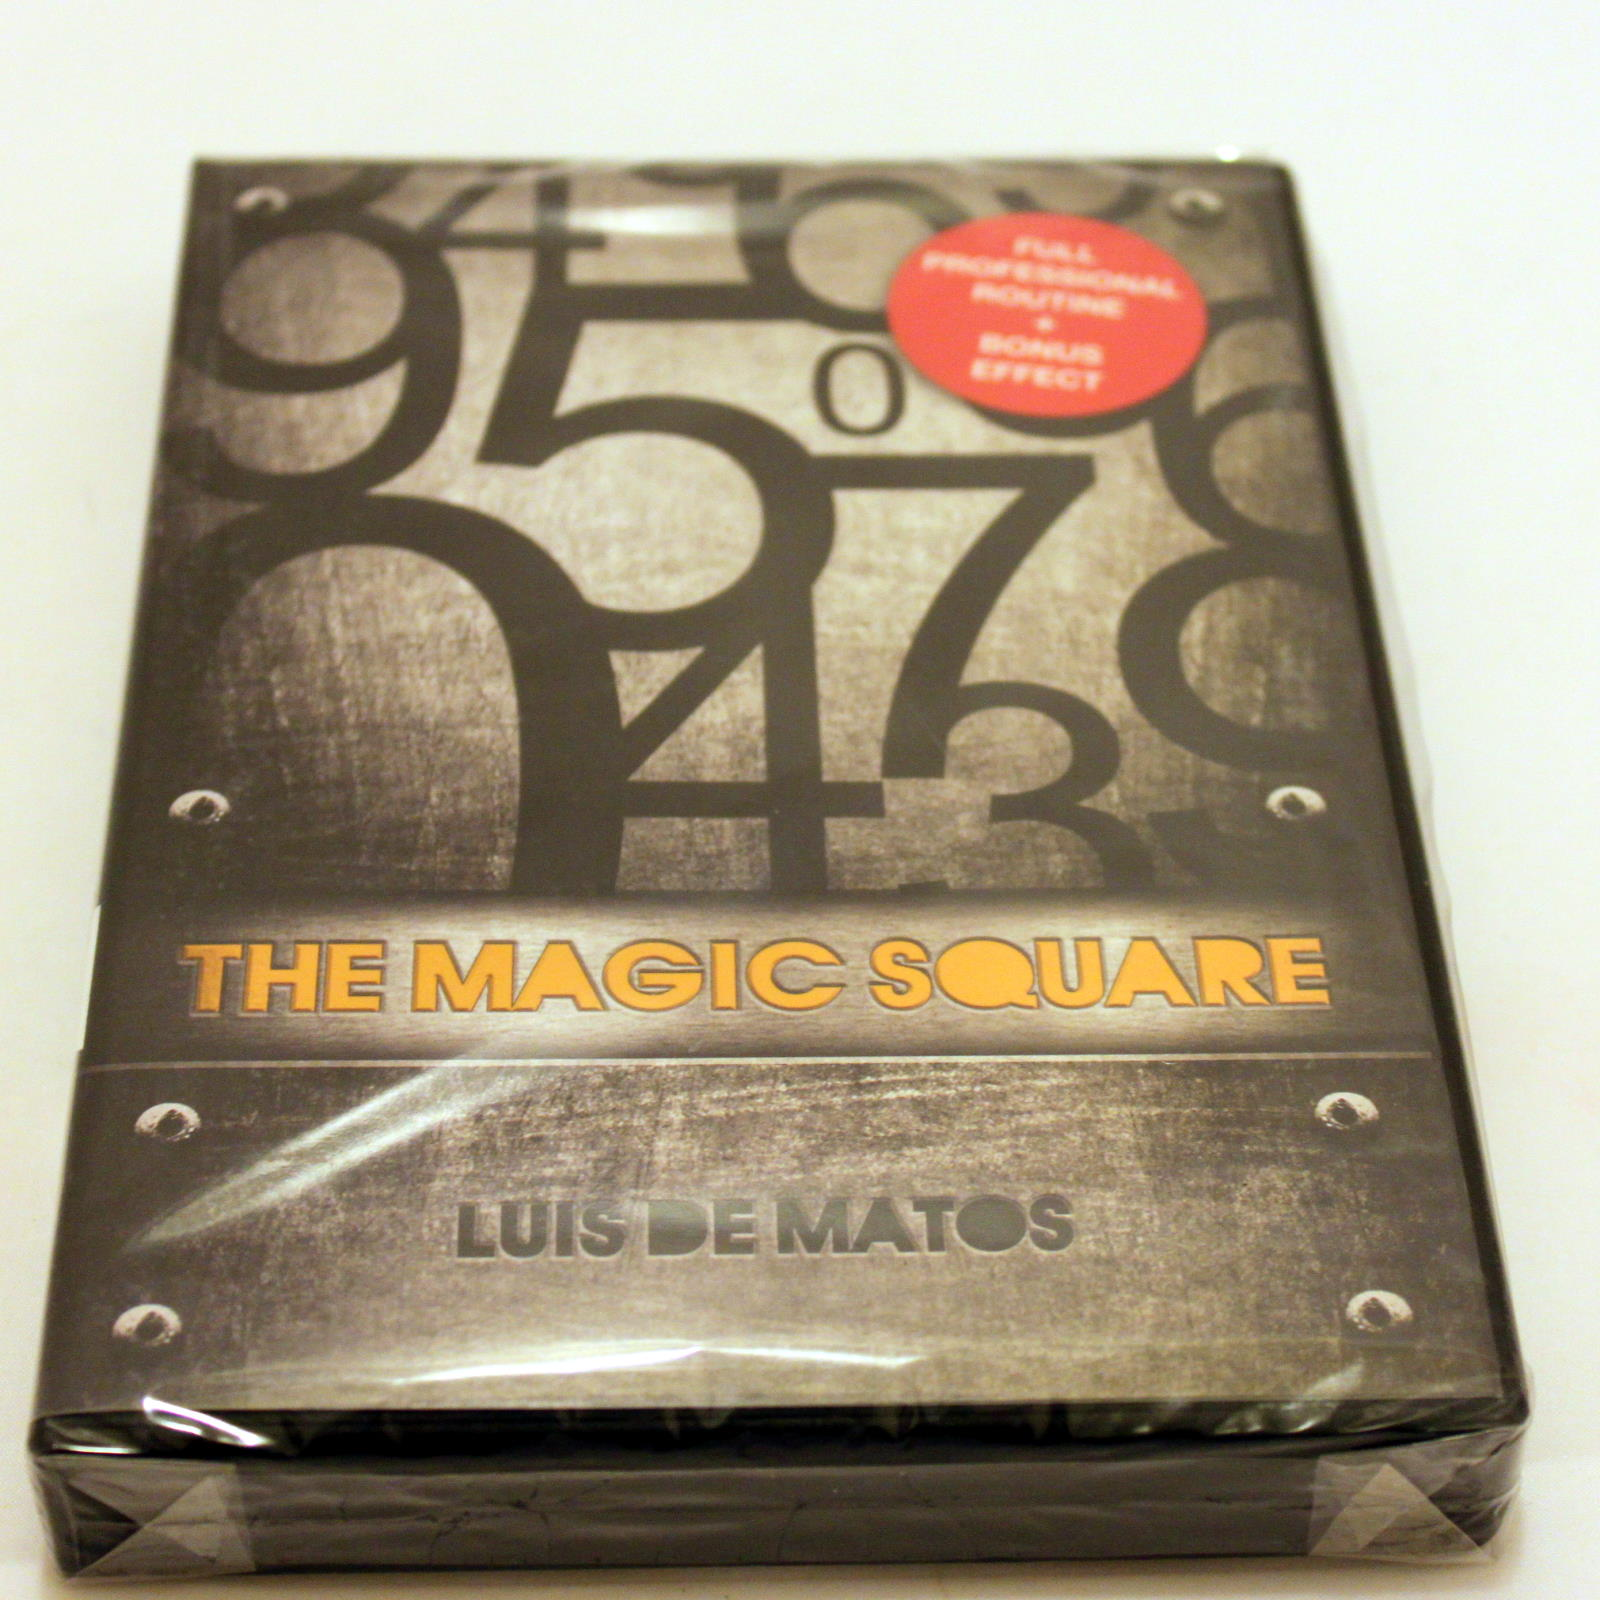 Magic Square, The (Matos) by Luis de Matos